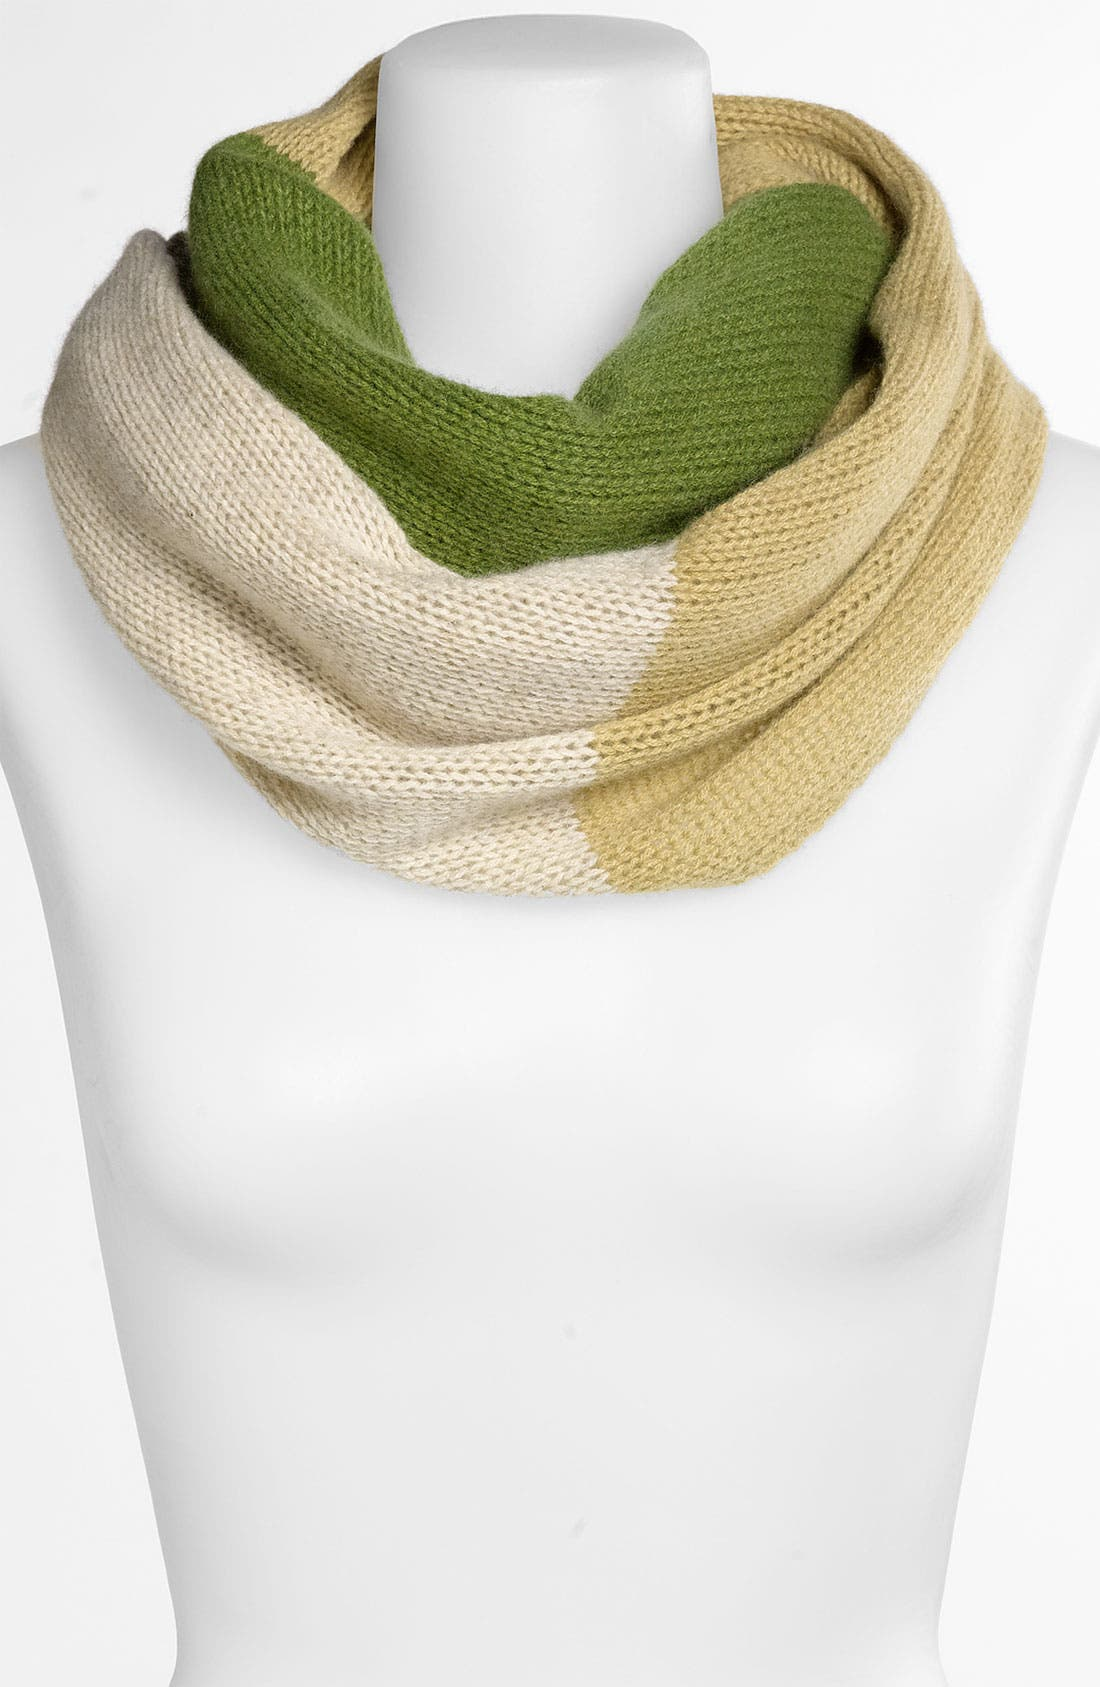 Main Image - Nordstrom Colorblock Cashmere Infinity Scarf